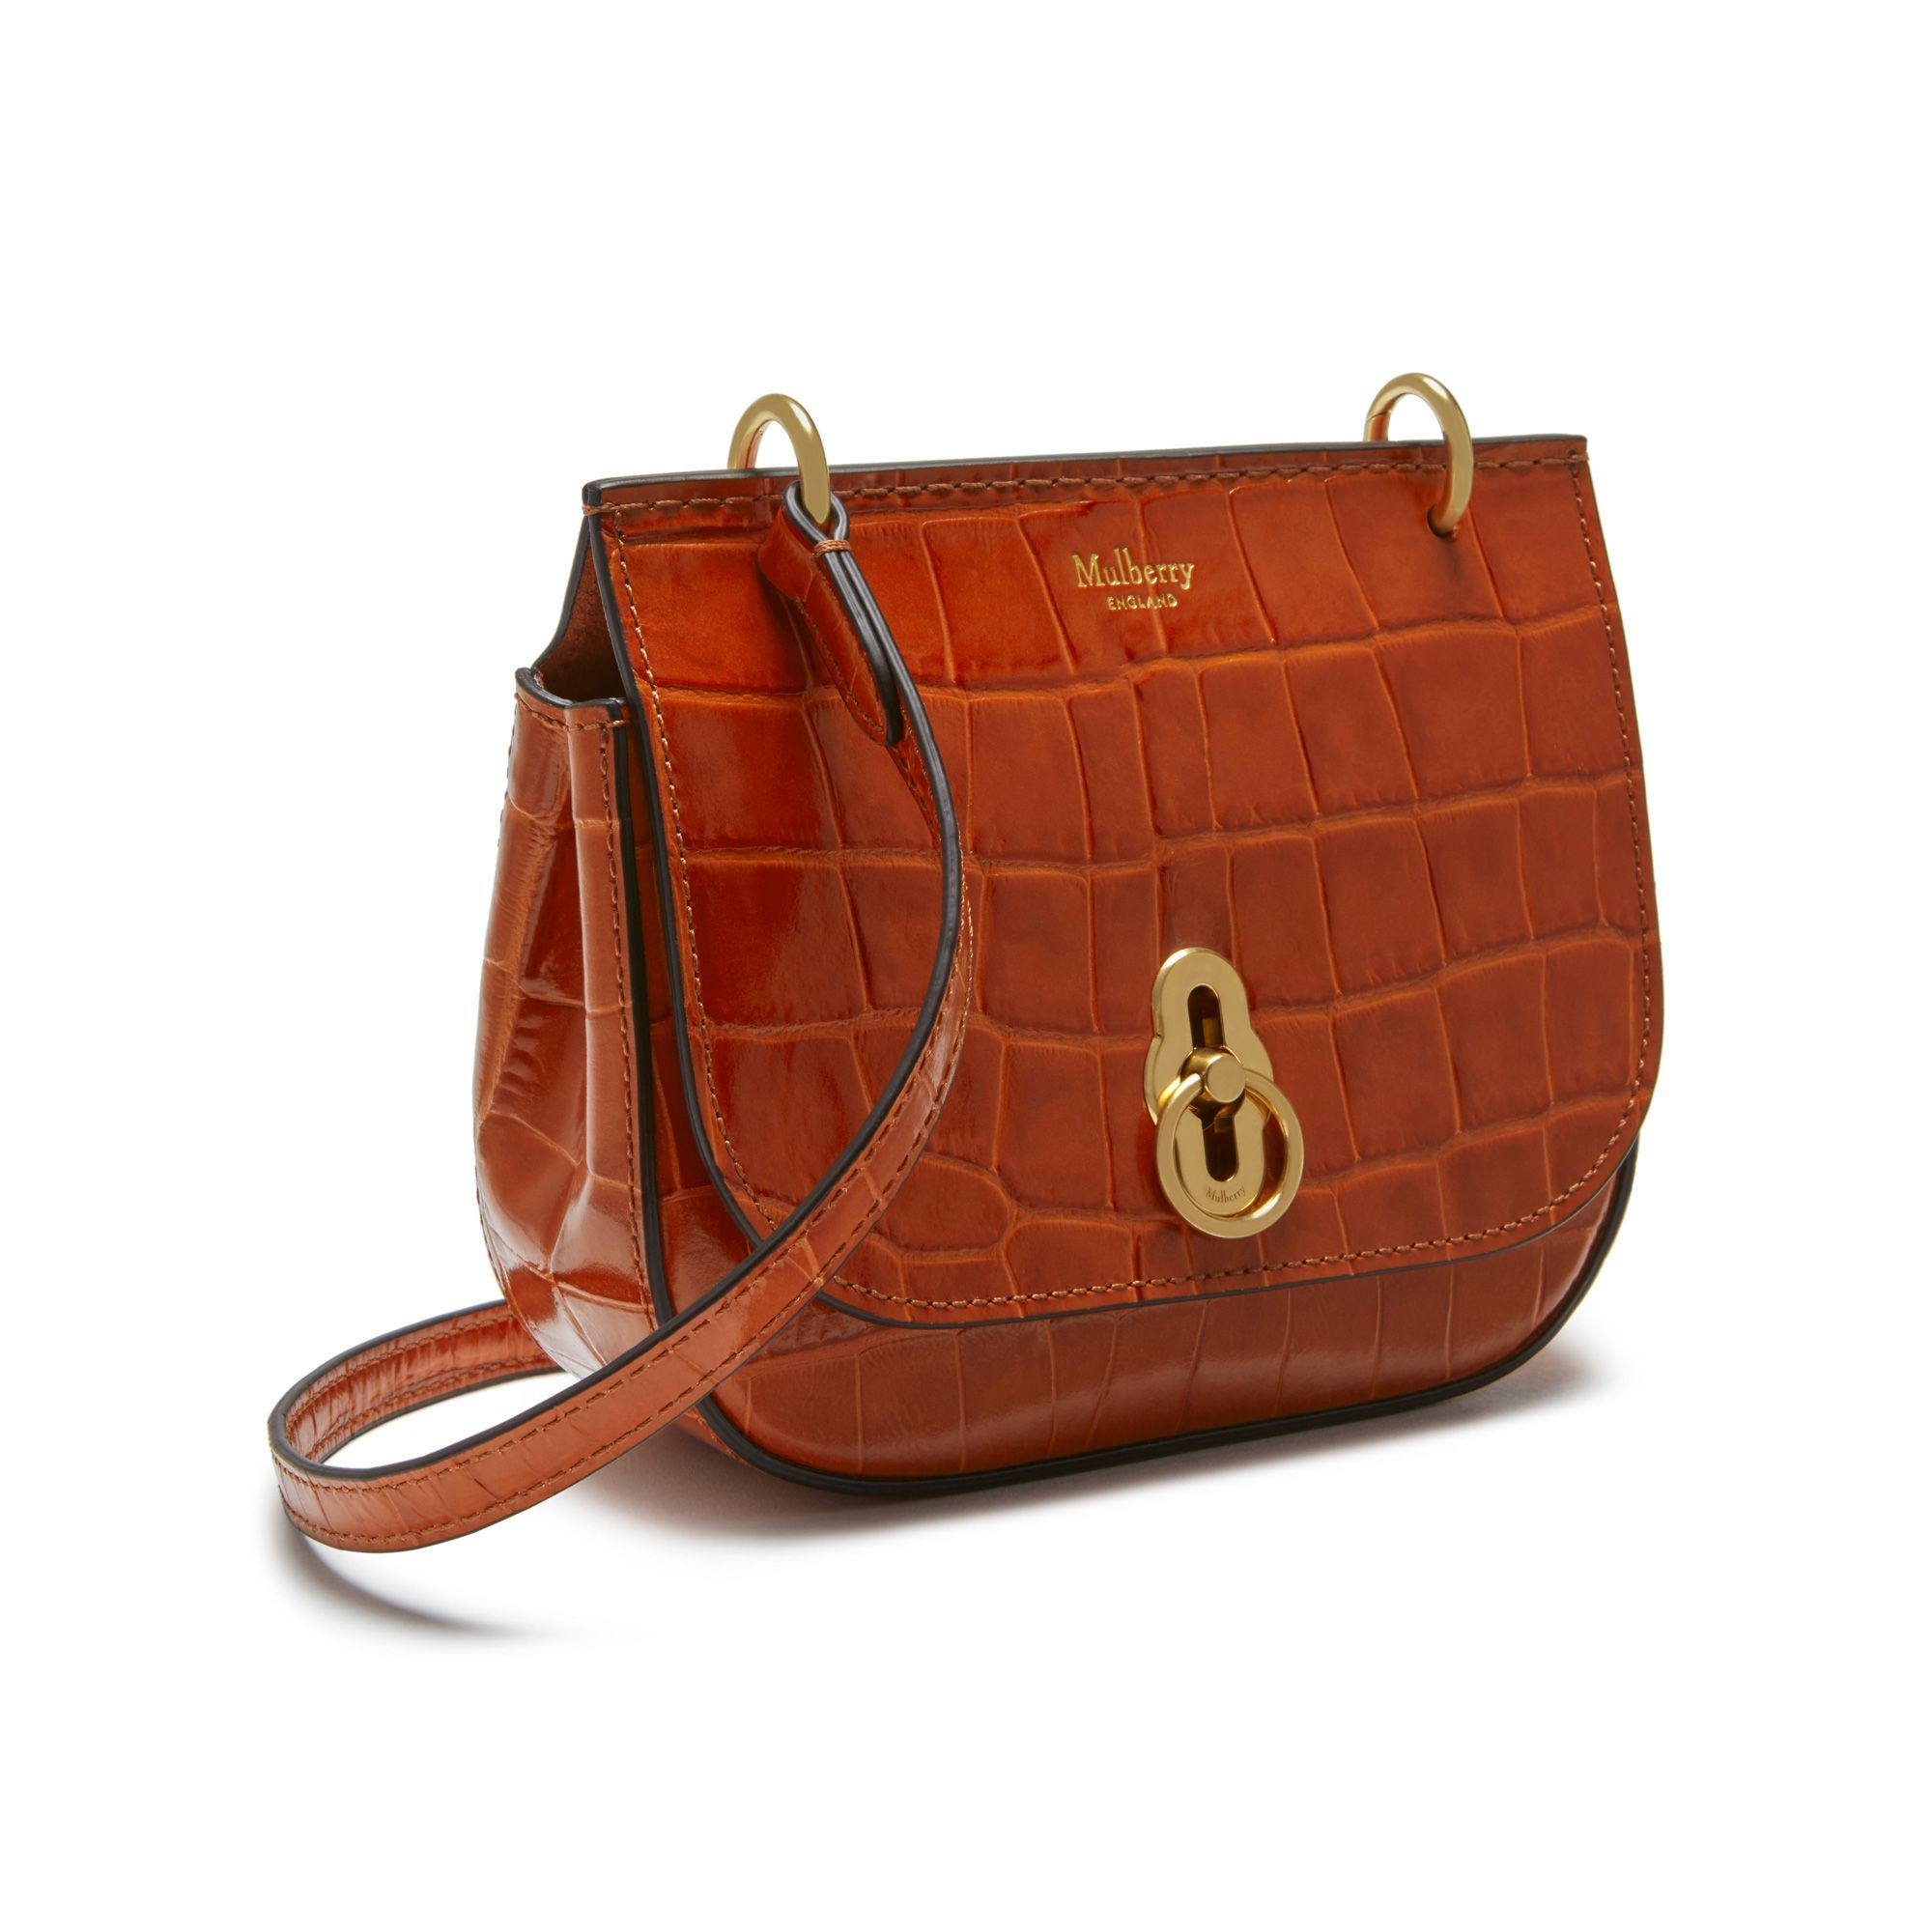 88f9fb3d82 Shop the Mini Amberley Satchel in Red Fox Croc Print Leather at Mulberry.com.  Meet the miniature addition to the Amberley family. The Mini Amberley  Satchel ...